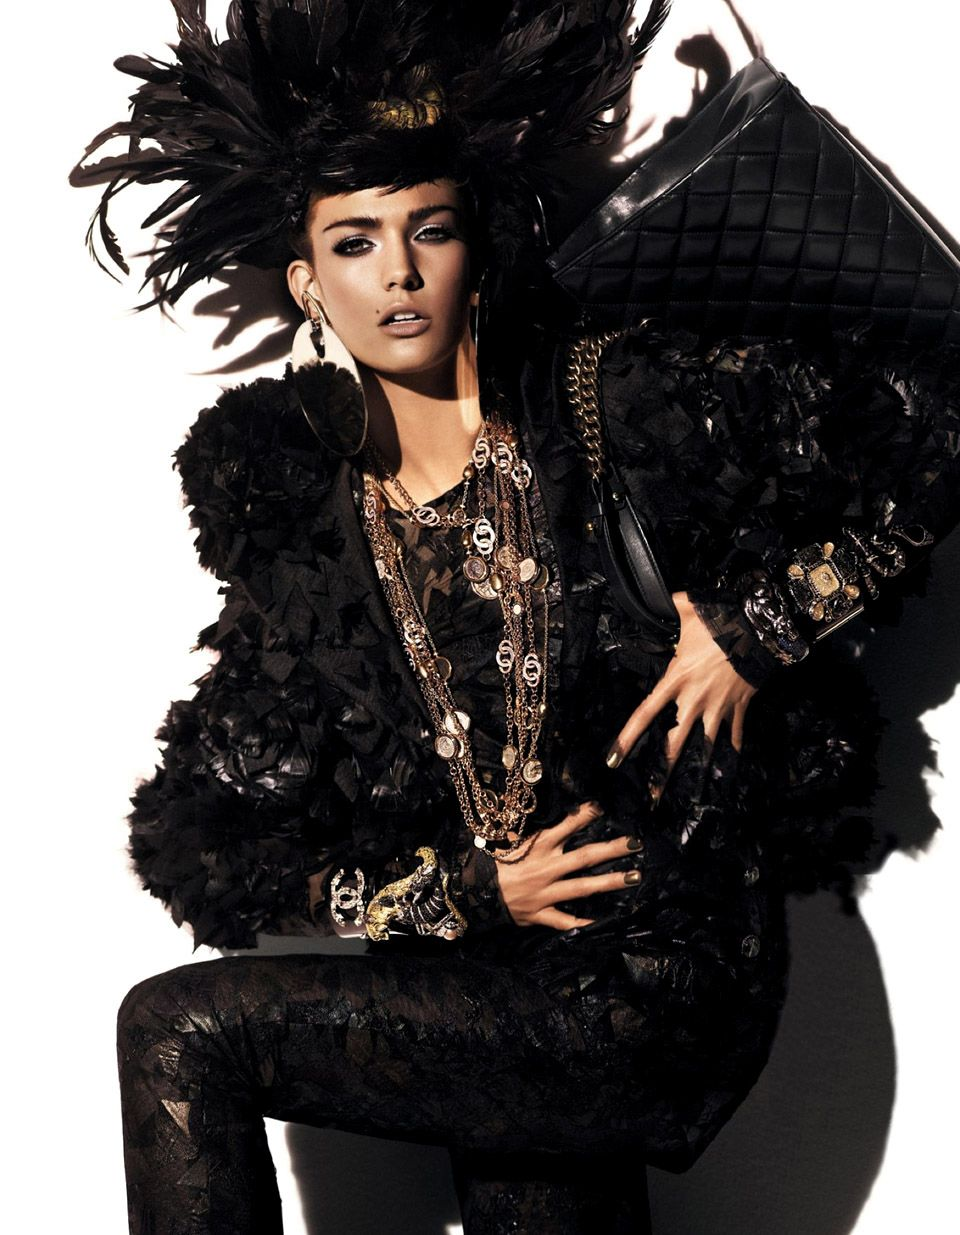 "Kendra Spears by Giampaolo Sgura (""Fur Regal Reasons"") - (December 2012) - December 2012 - Fashion Editorials - All about fashion"